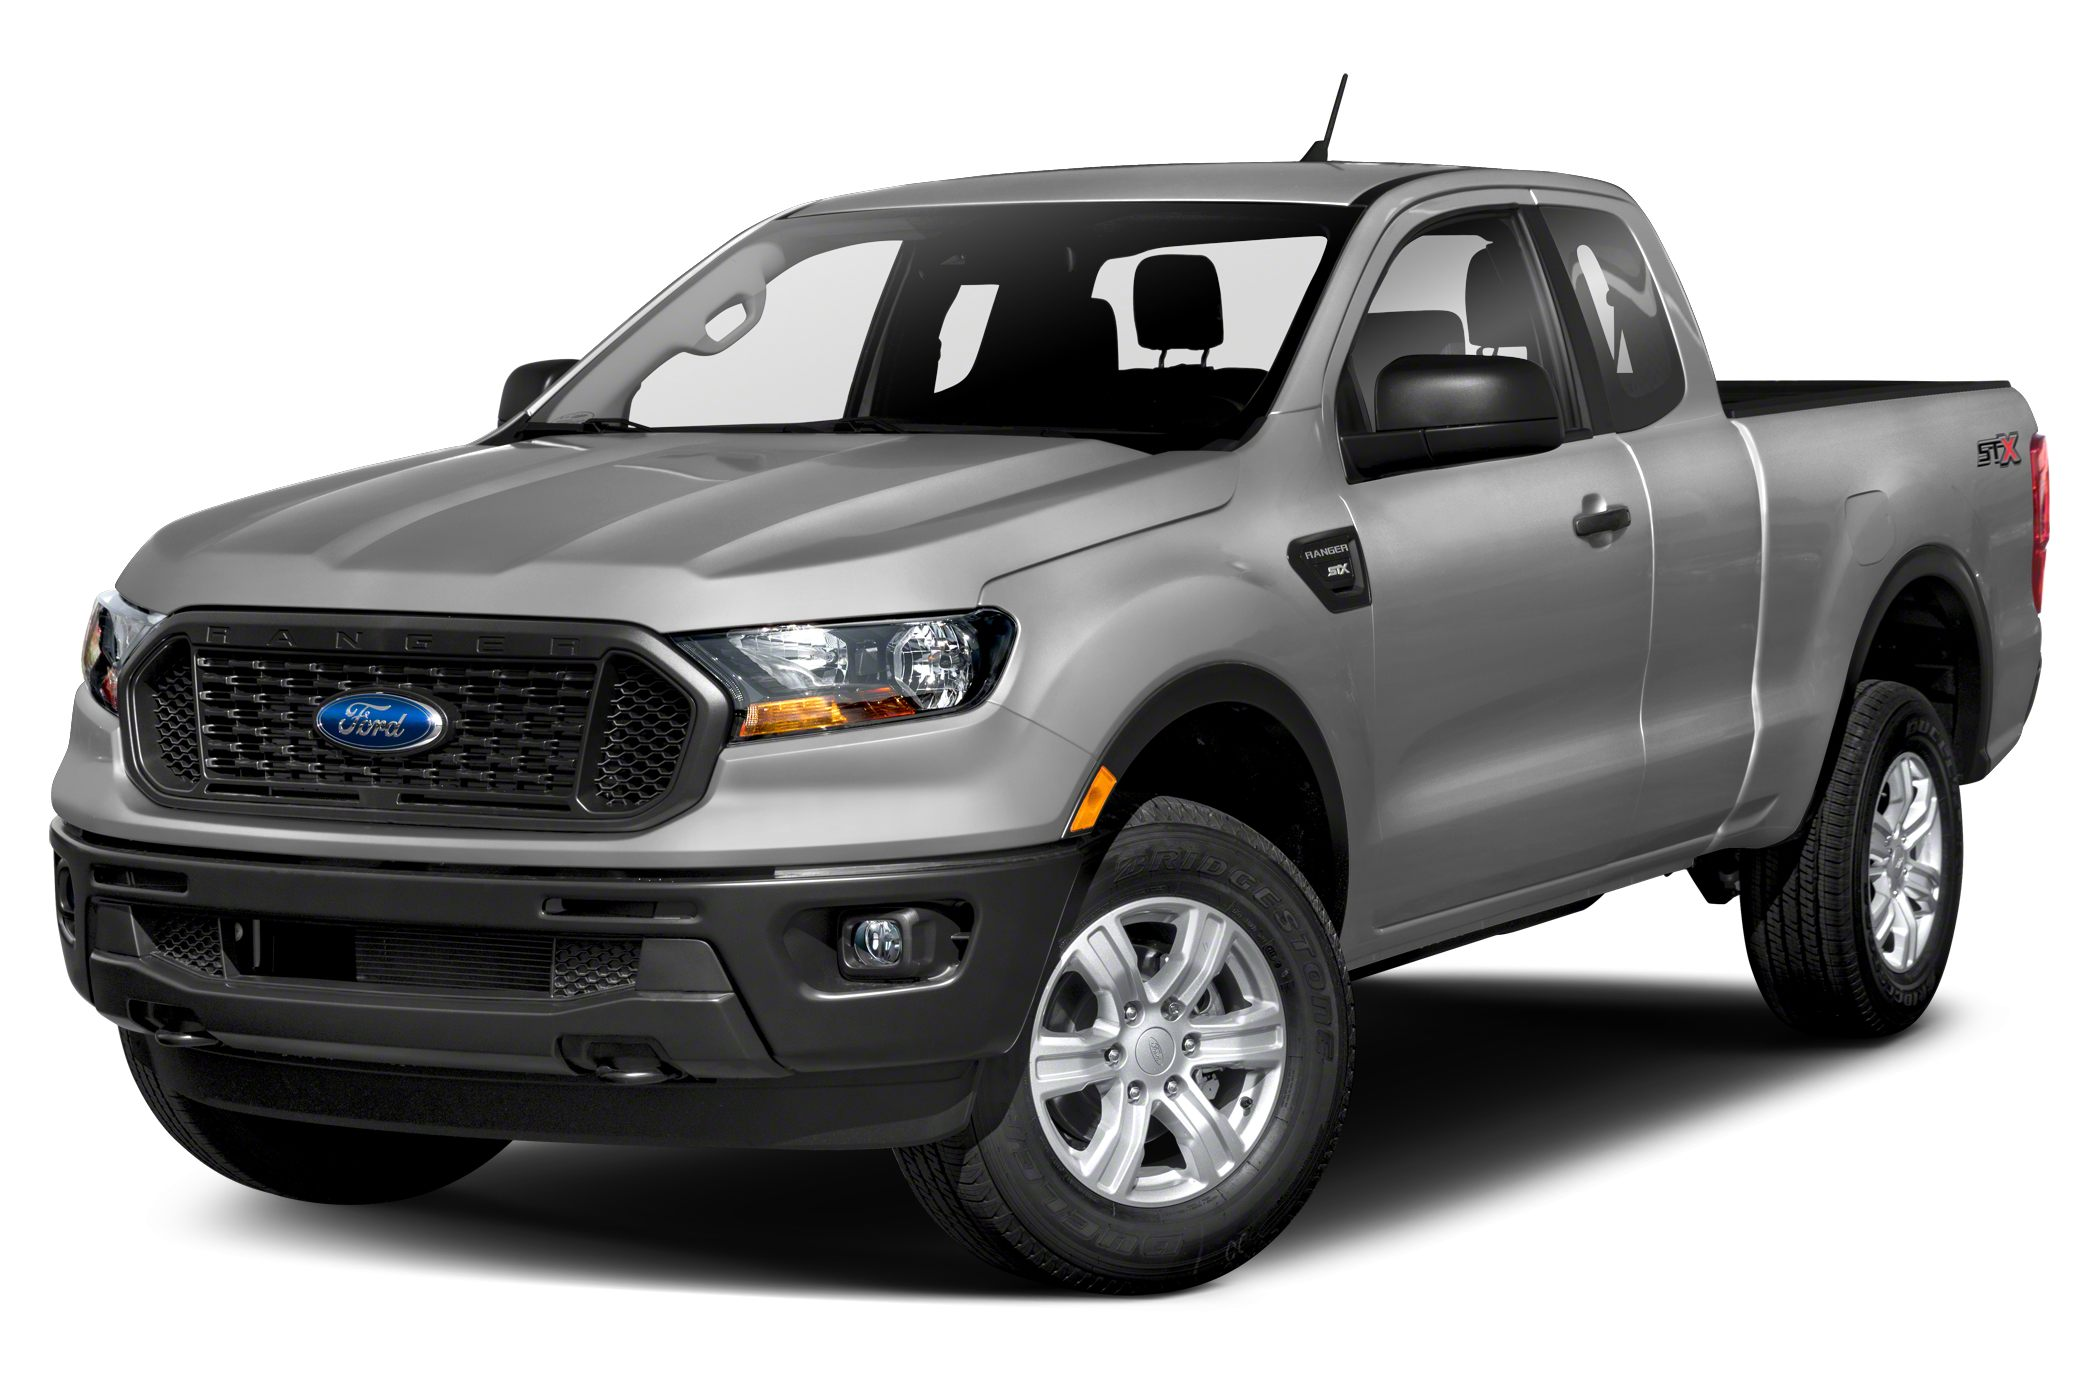 2020 Ford Ranger Rebates And Incentives